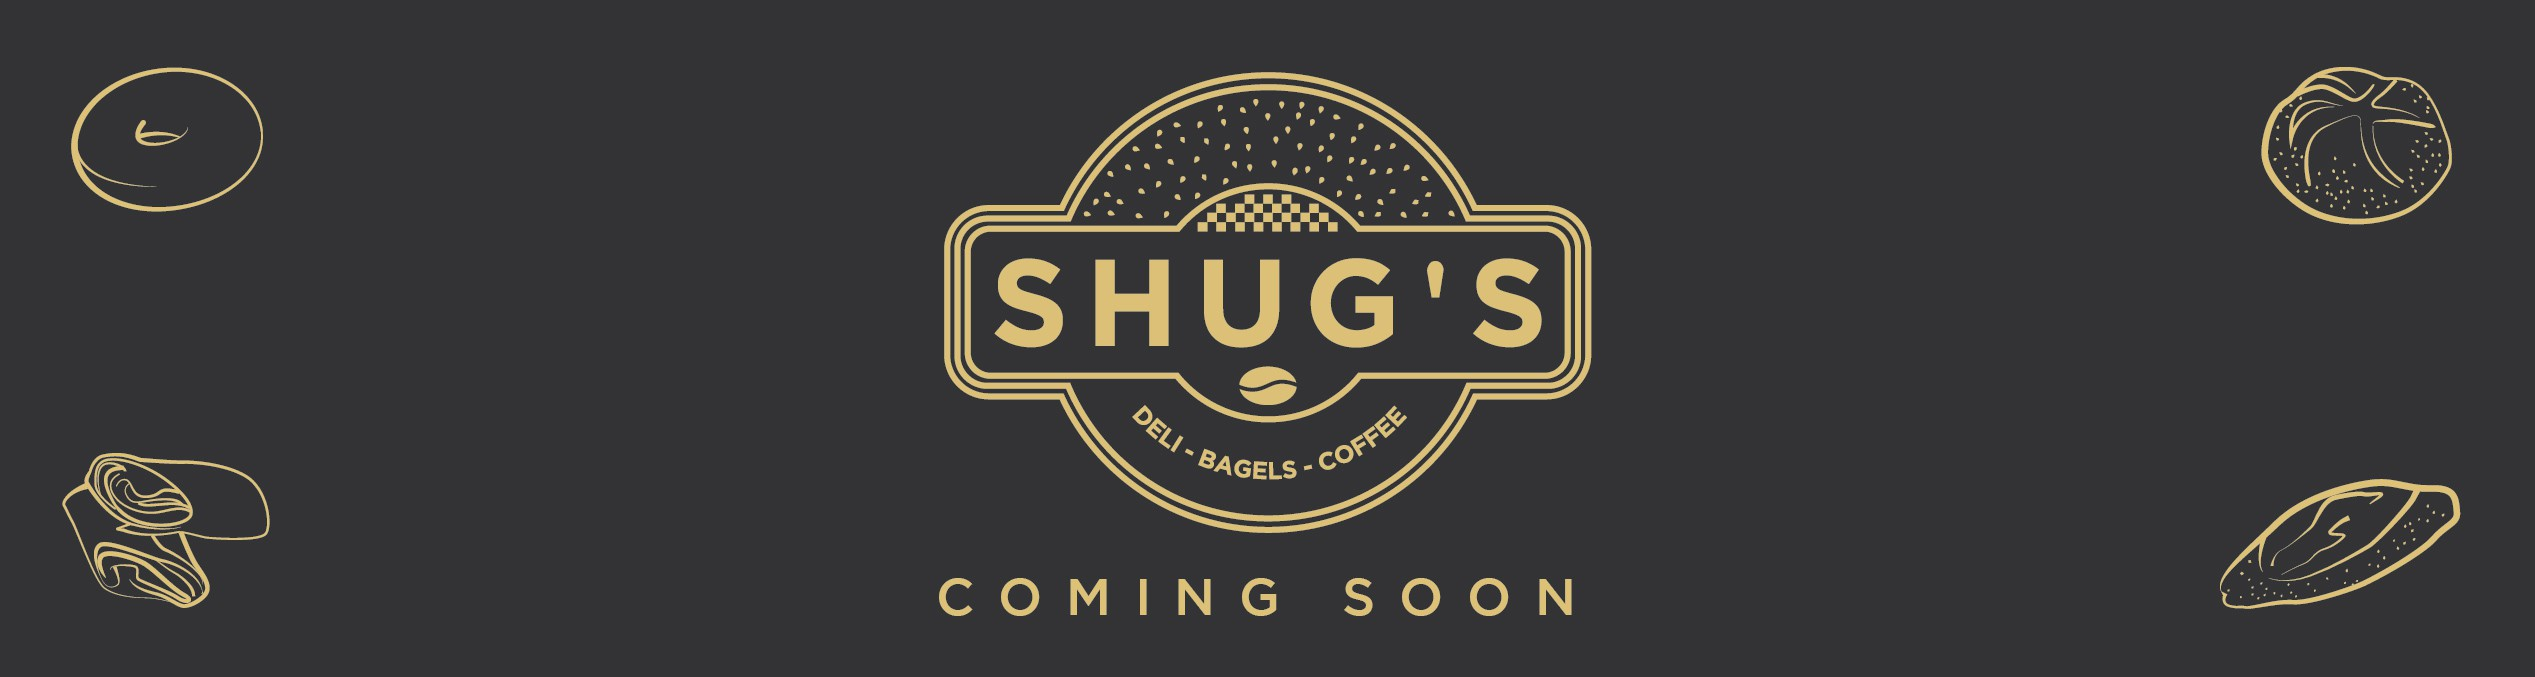 Shug's - Project we have worked on together before